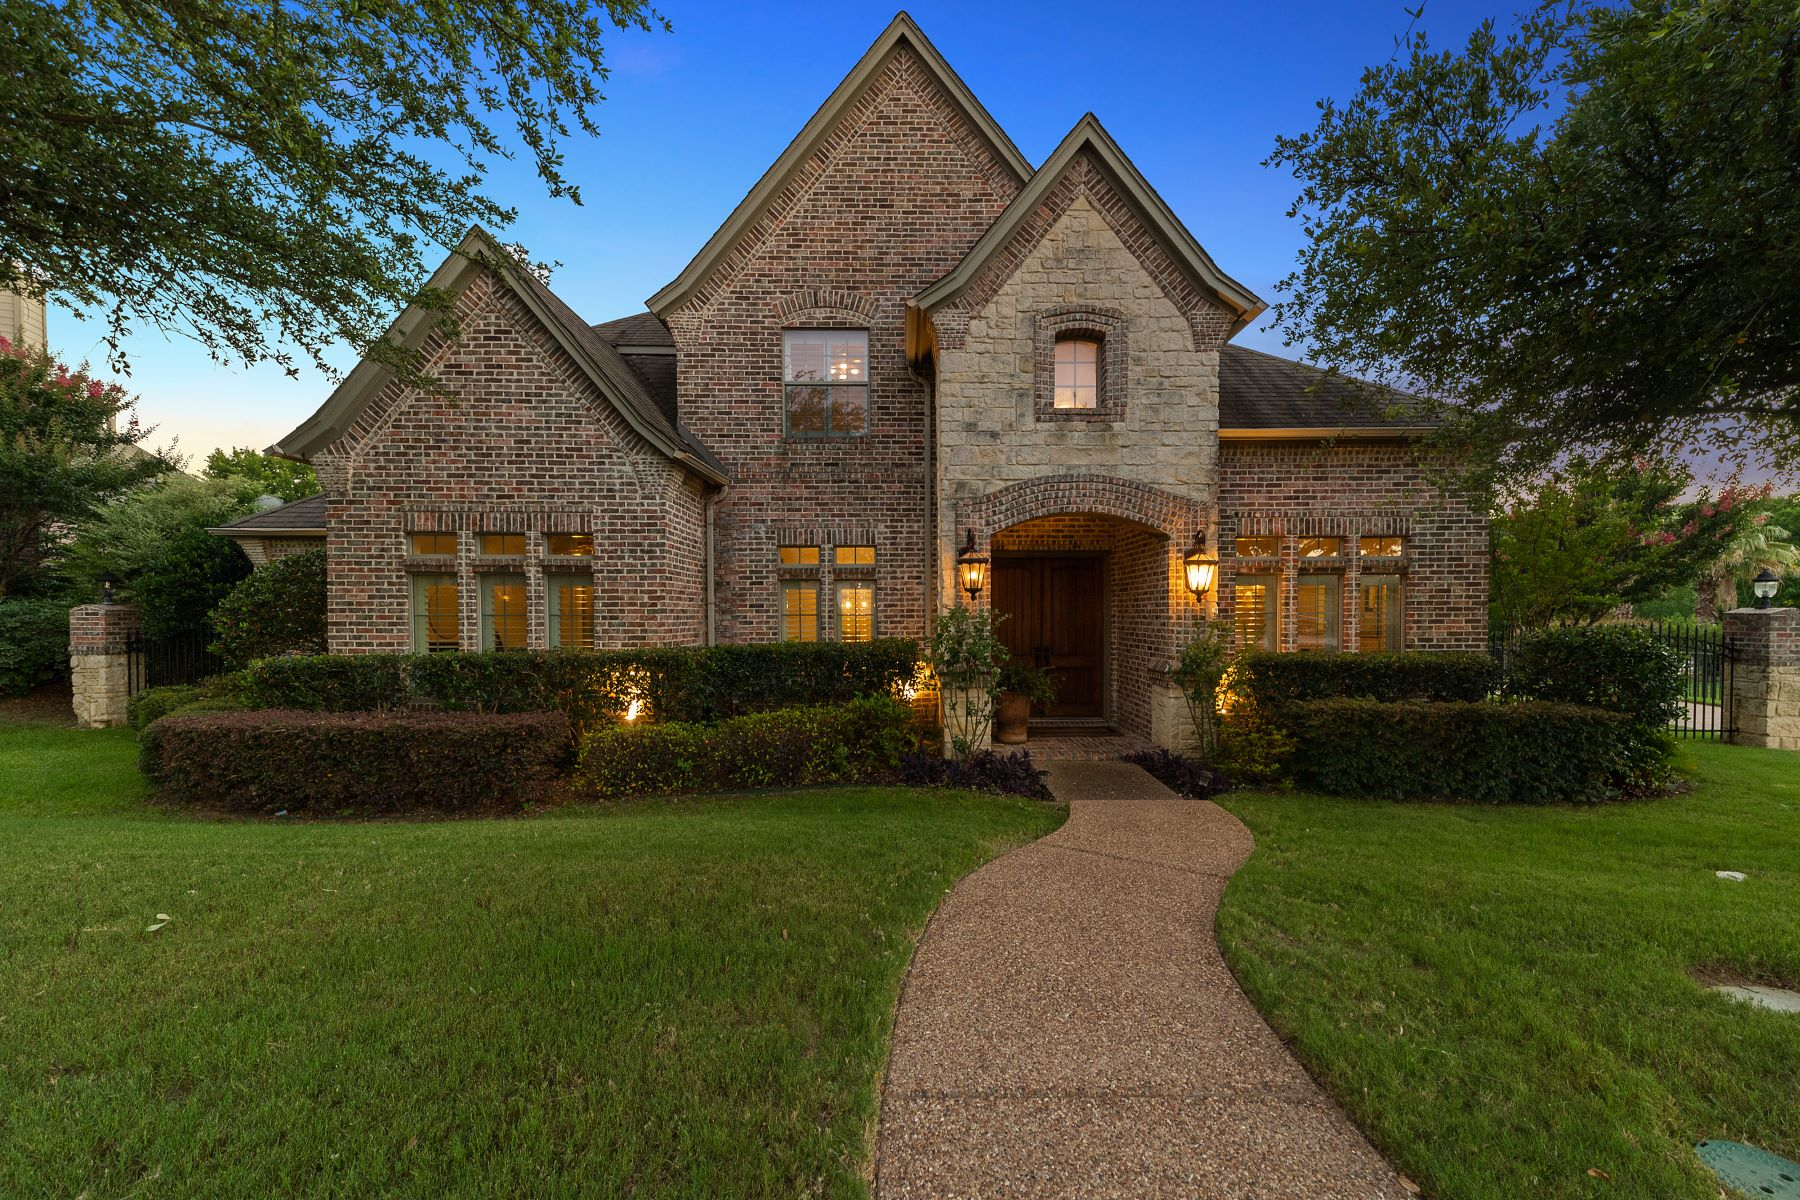 Single Family Homes for Sale at 2020 Stone Canyon Court, Arlington, TX, 76012 2020 Stone Canyon Court Arlington, Texas 76012 United States